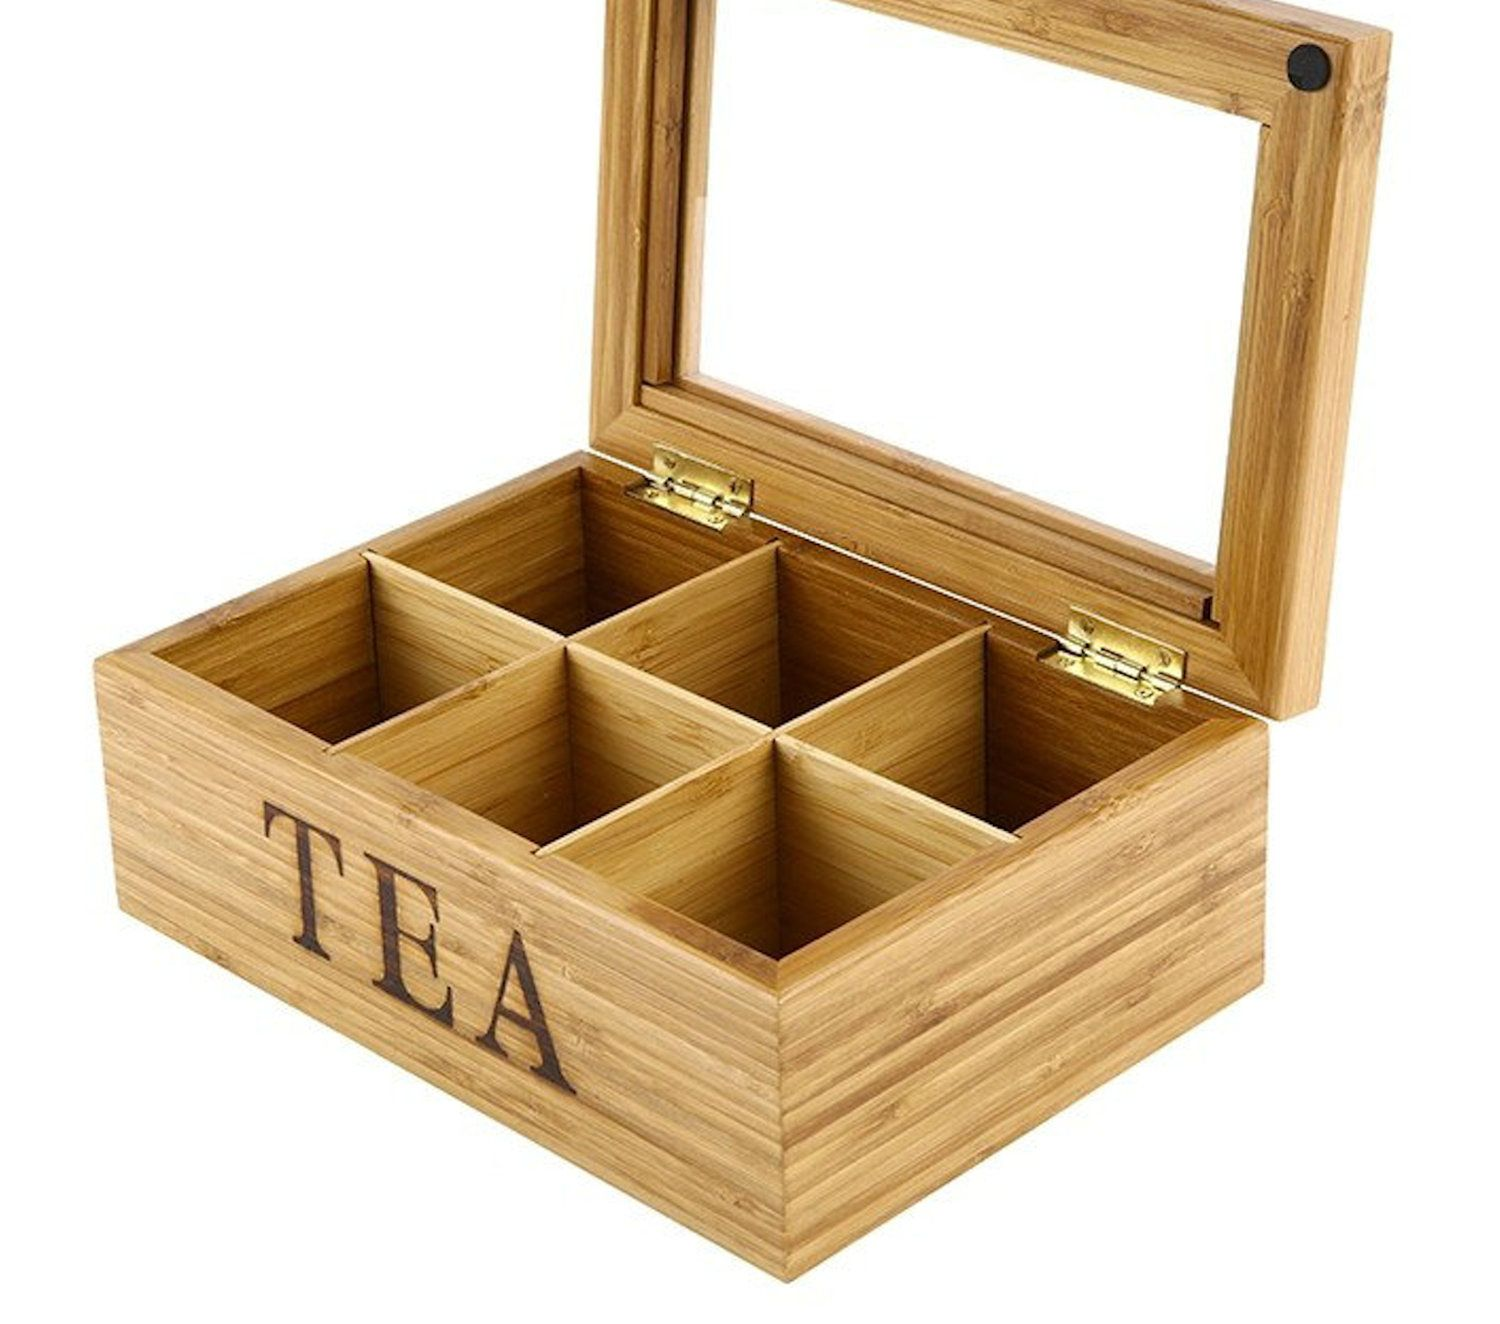 Bamboo Kingtea box made of natural bamboo